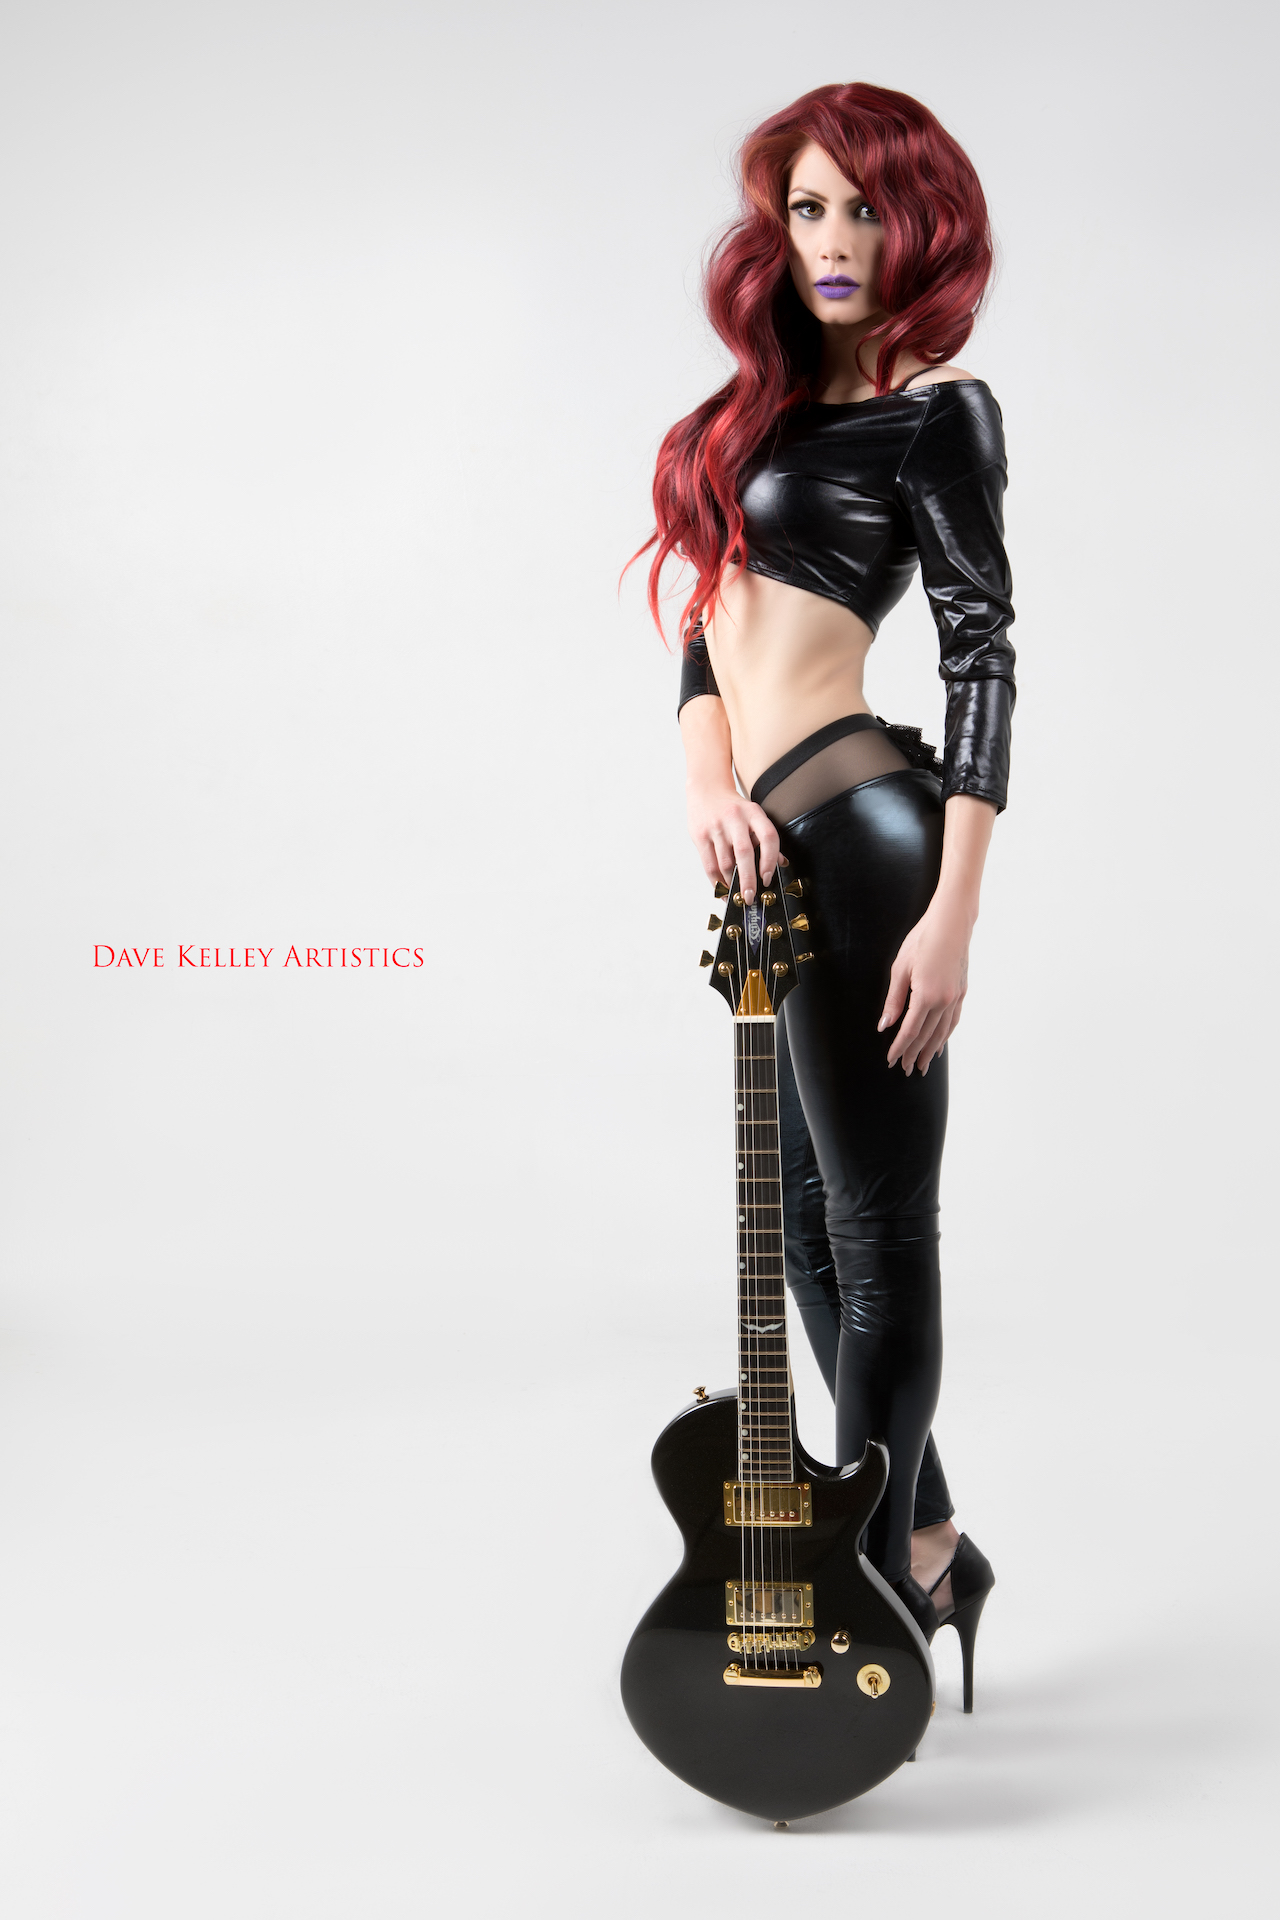 Guitar0217templar-lisa-tayler - IMGL1147-Edit.jpg